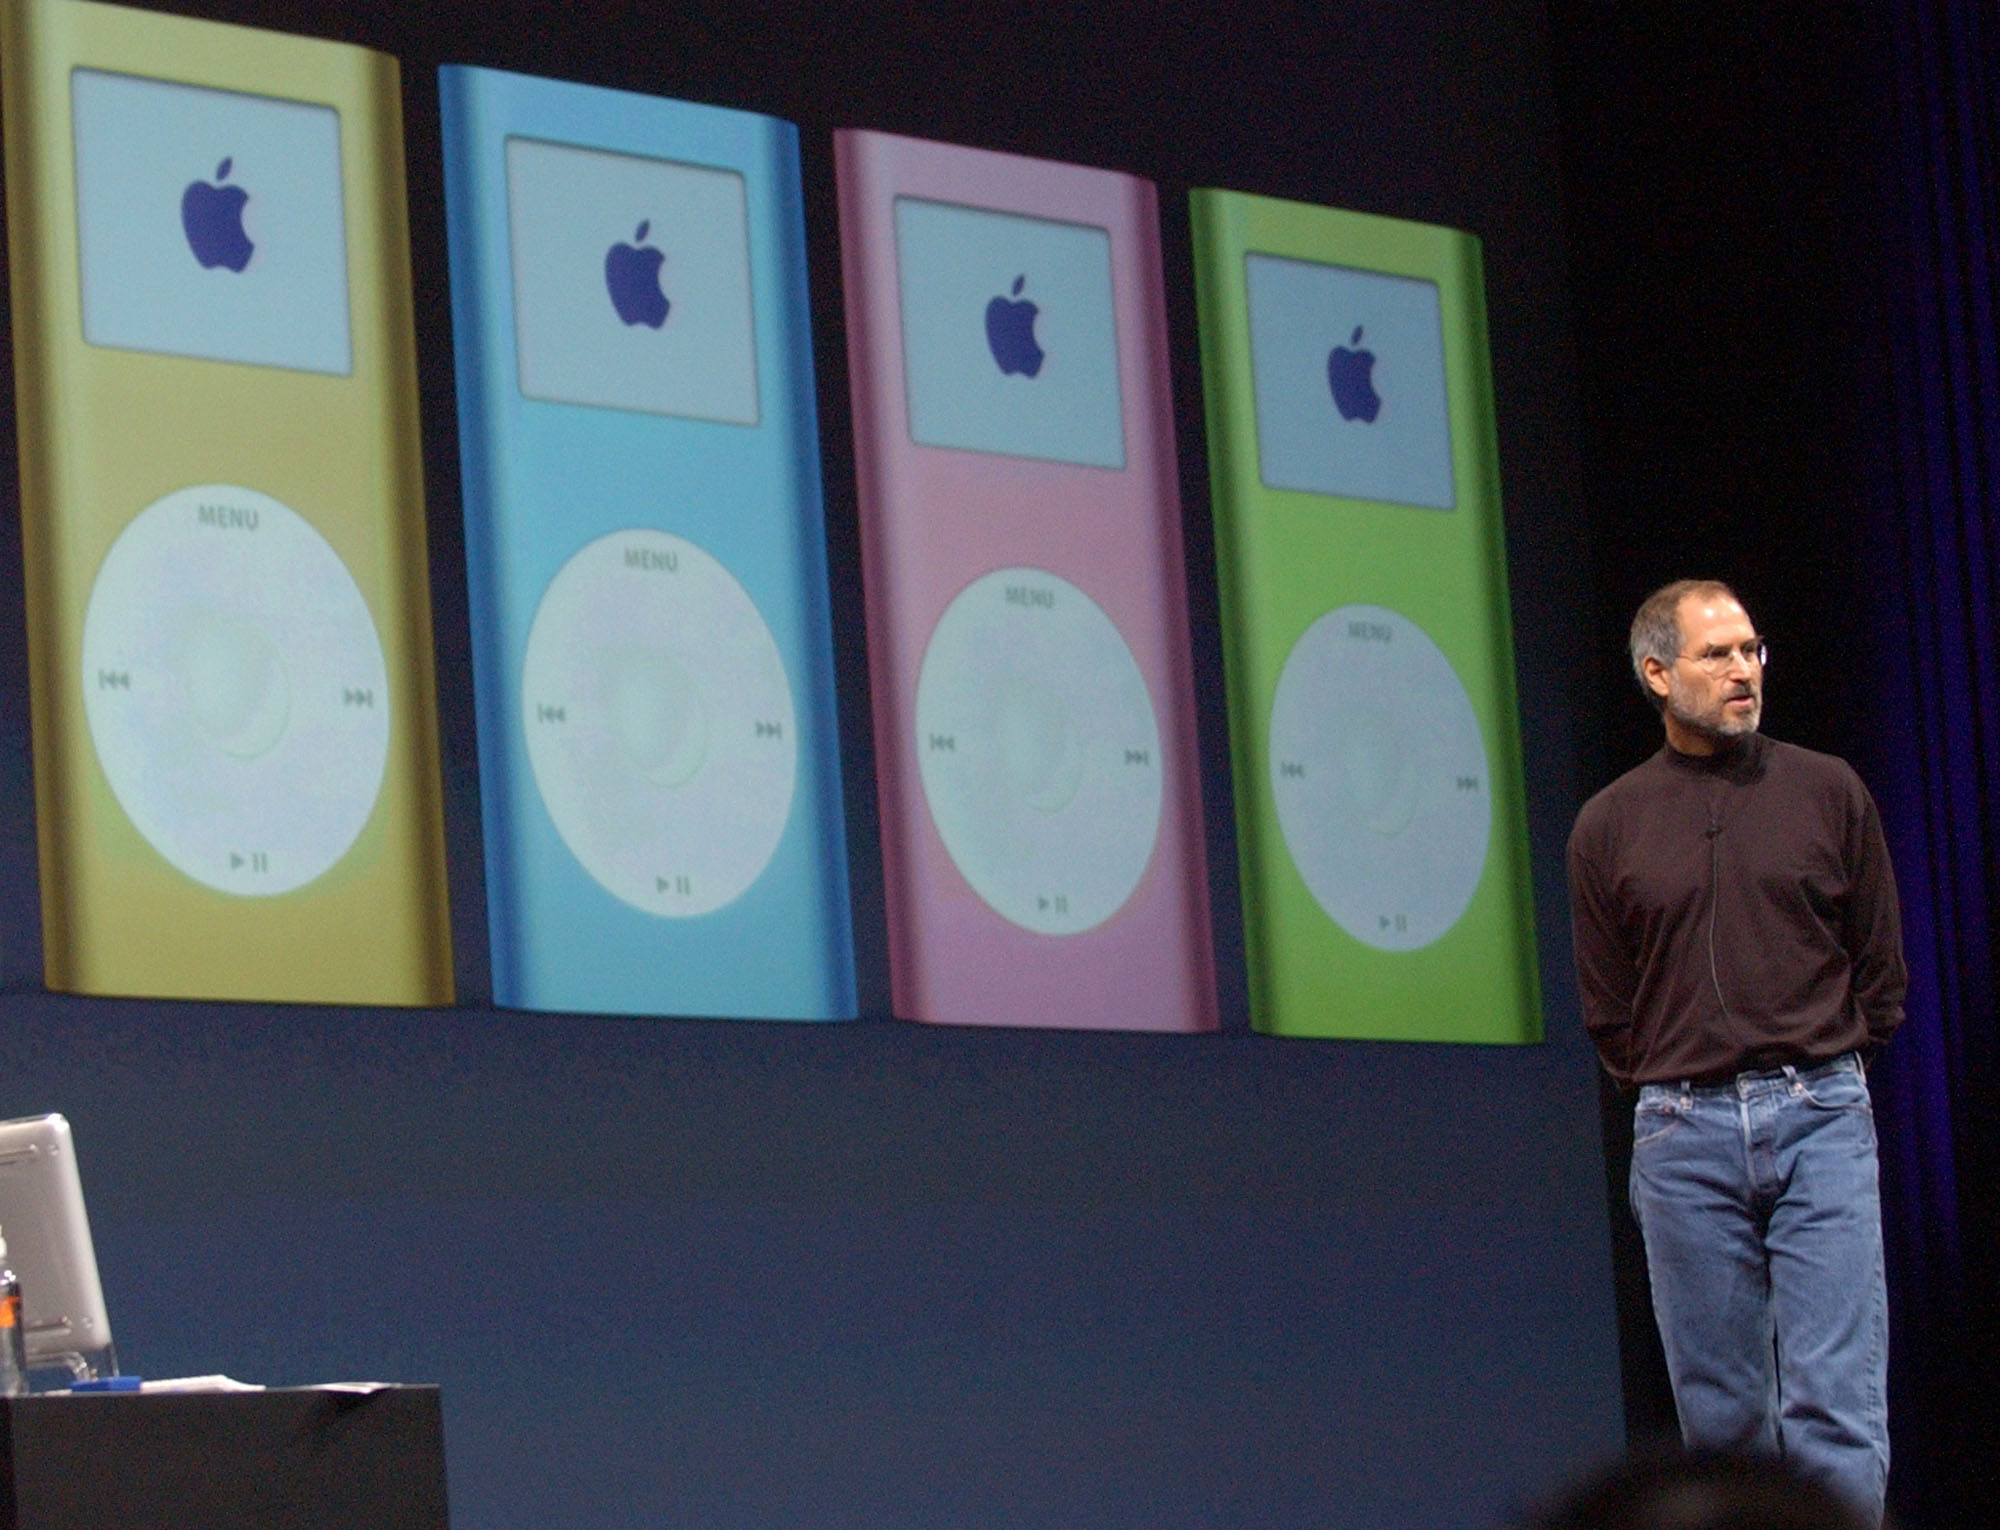 <div class='meta'><div class='origin-logo' data-origin='AP'></div><span class='caption-text' data-credit='AP Photo/Marcio Jose Sanchez'>Apple CEO Steve Jobs talks about his company's new product, the iPod mini, pictured in the background, at the Macworld Conference and Expo in San Francisco Tuesday, Jan 6, 2004.</span></div>